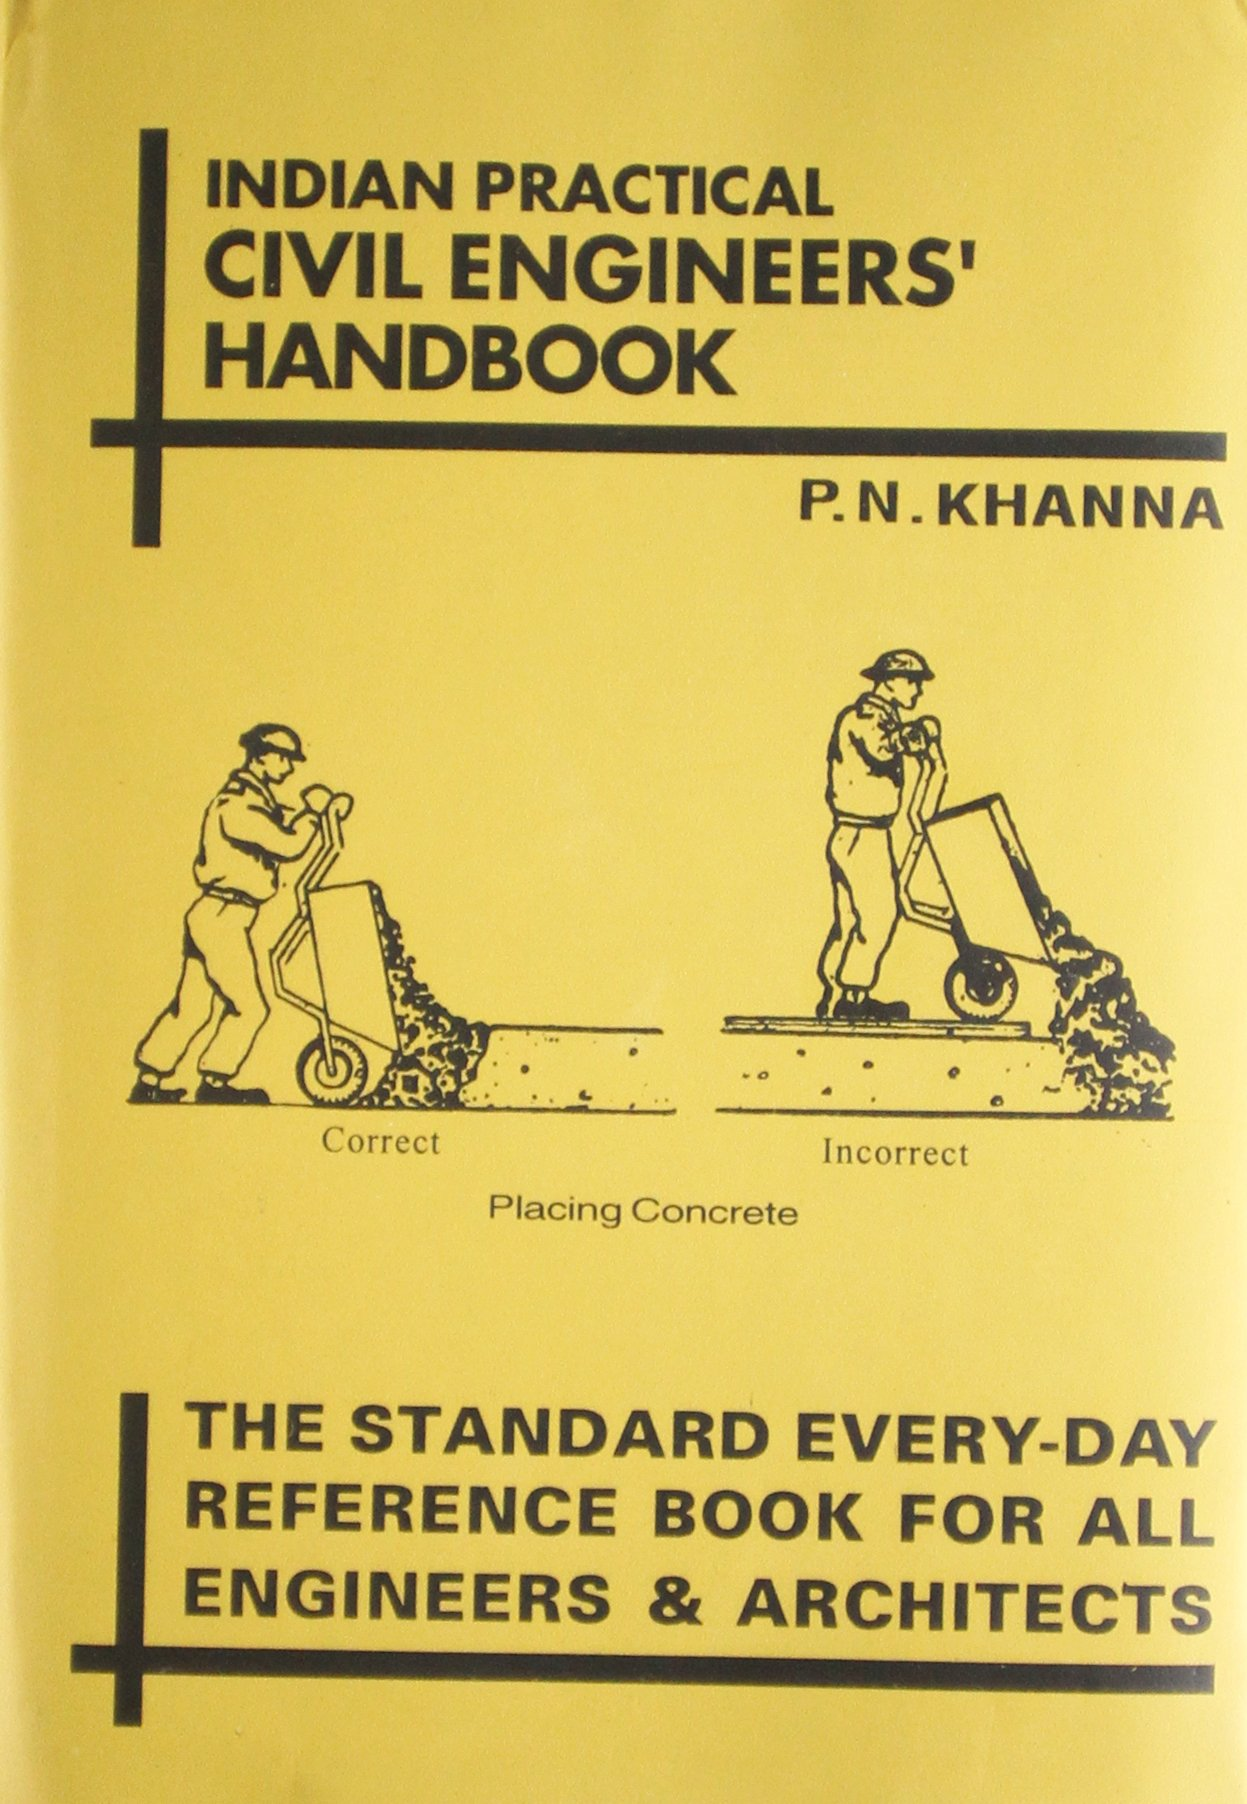 Buy Indian Practical Civil Engineers Handbook Book Online at Low Prices in  India | Indian Practical Civil Engineers Handbook Reviews & Ratings -  Amazon.in